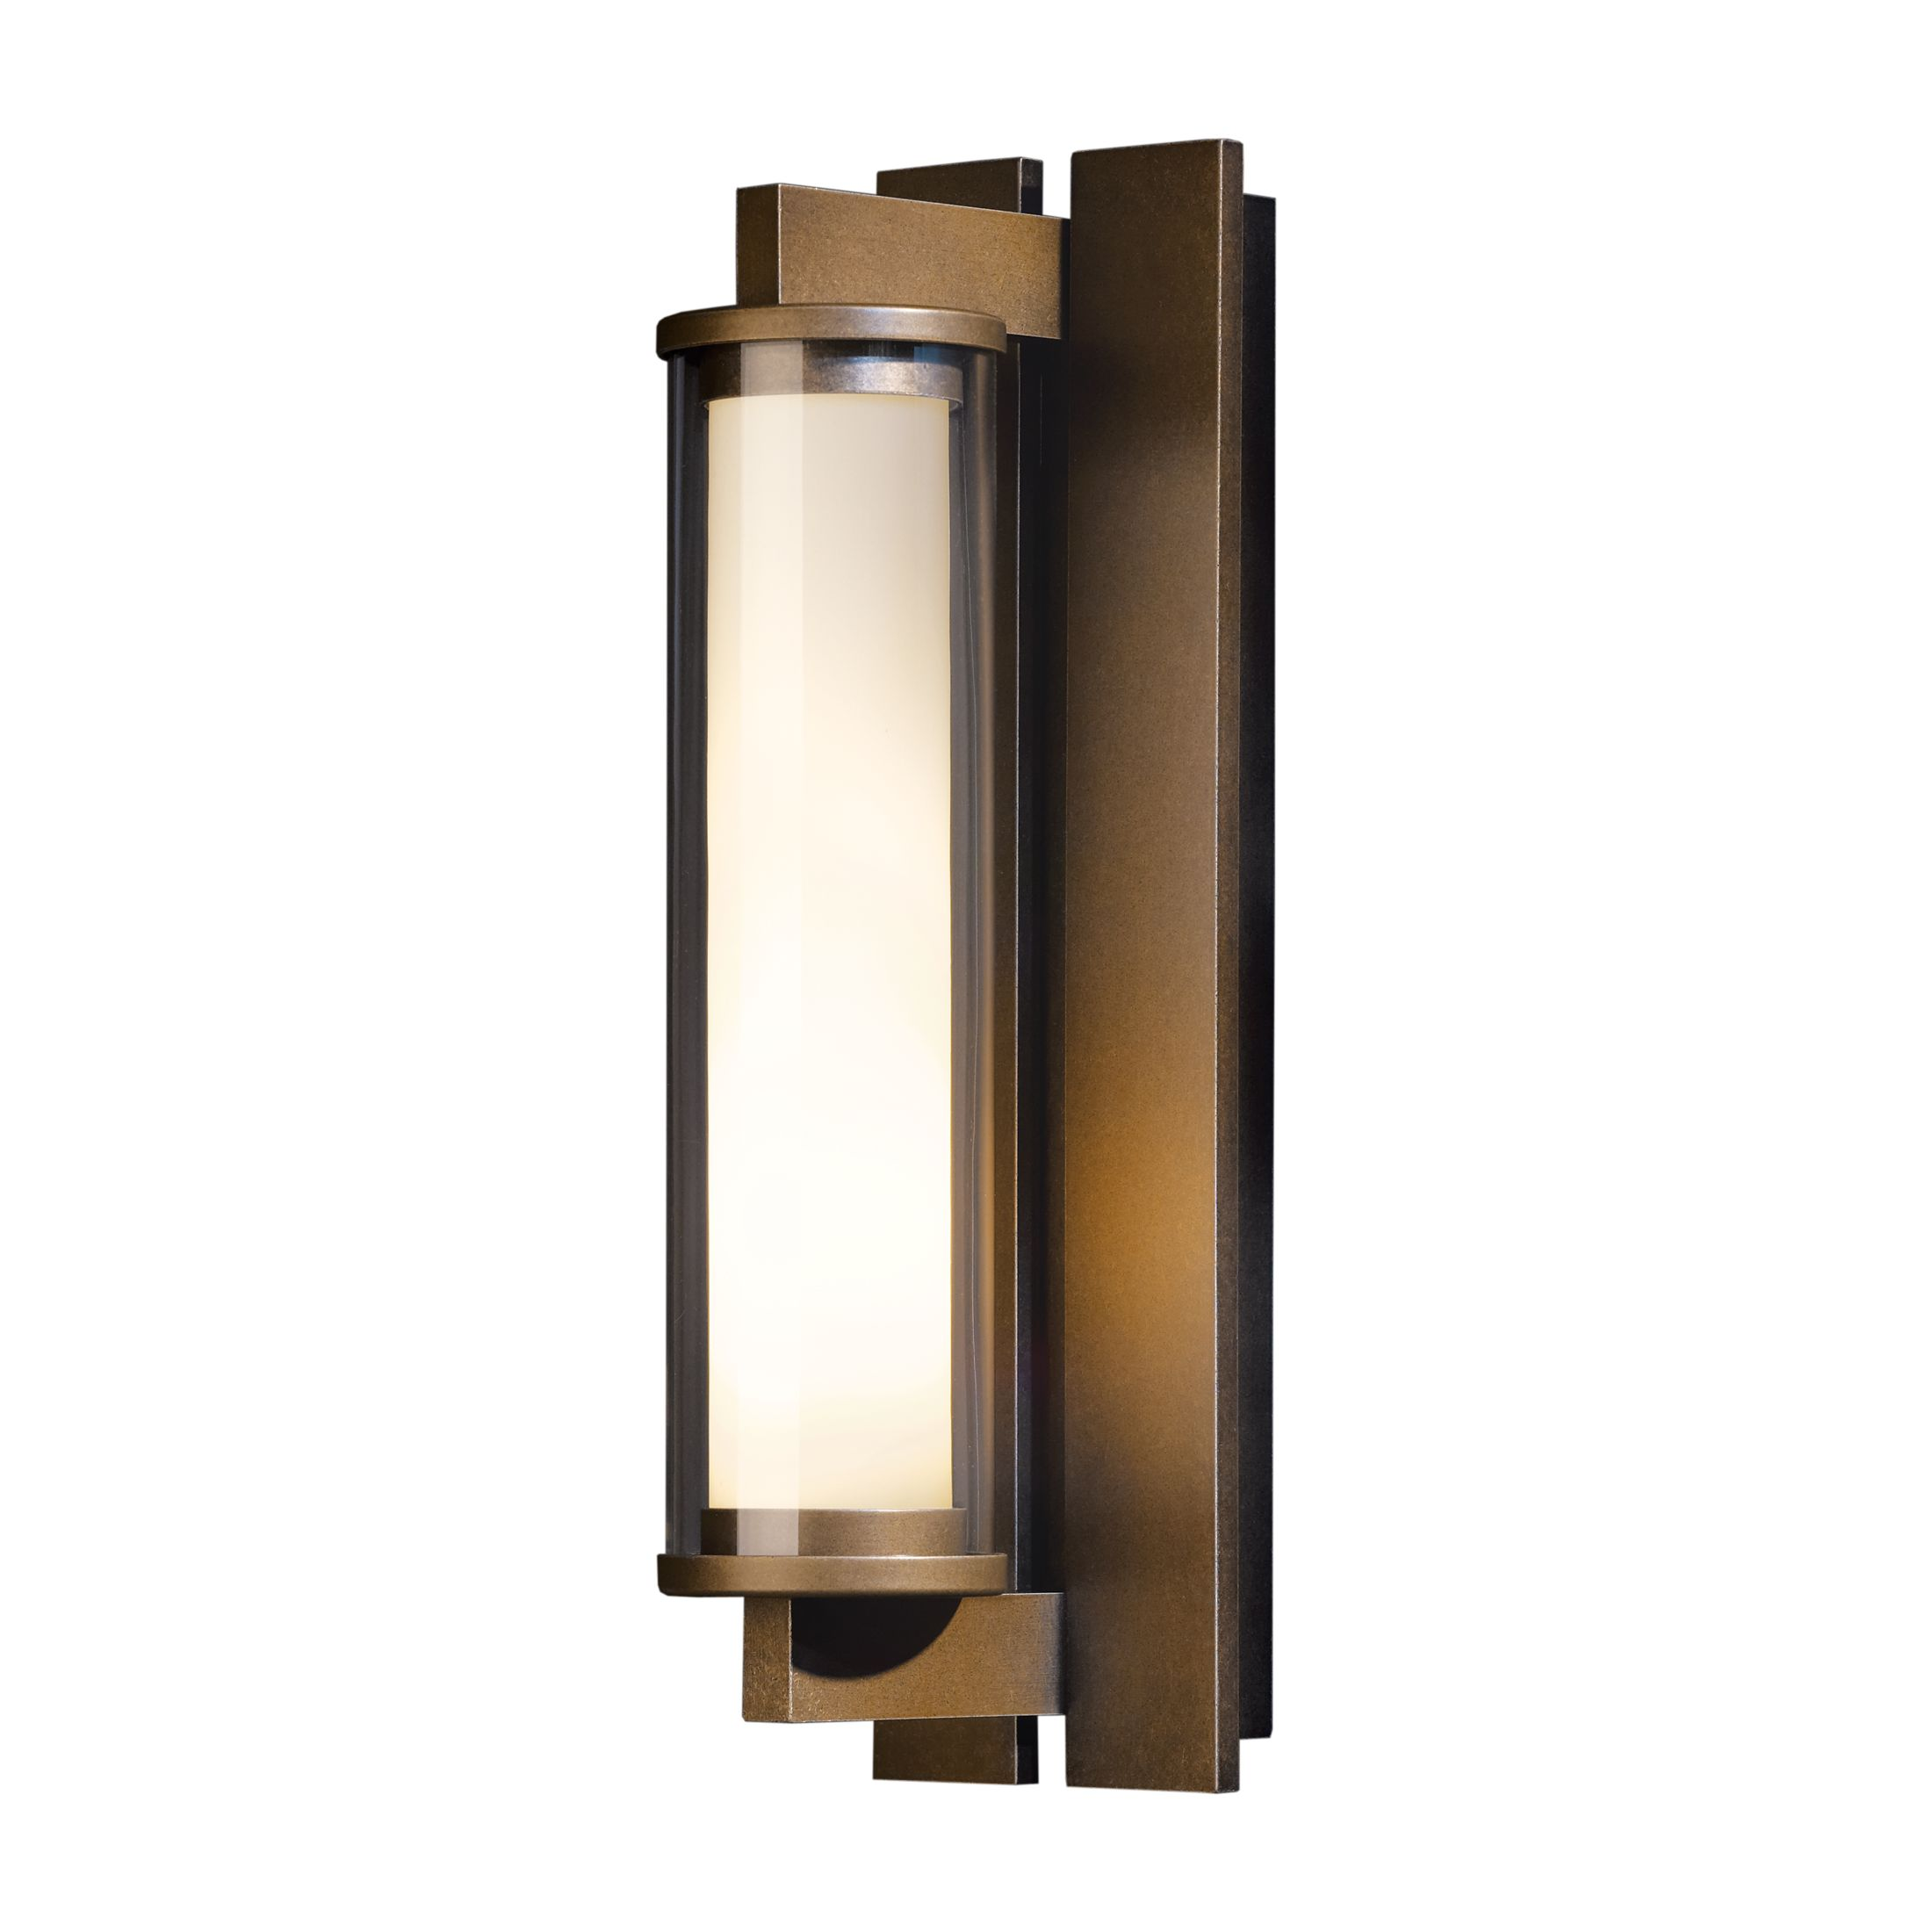 copy mahogany light glass natural undefined outdoor medium axis forge clear sconce led sil with double iron hubbardton